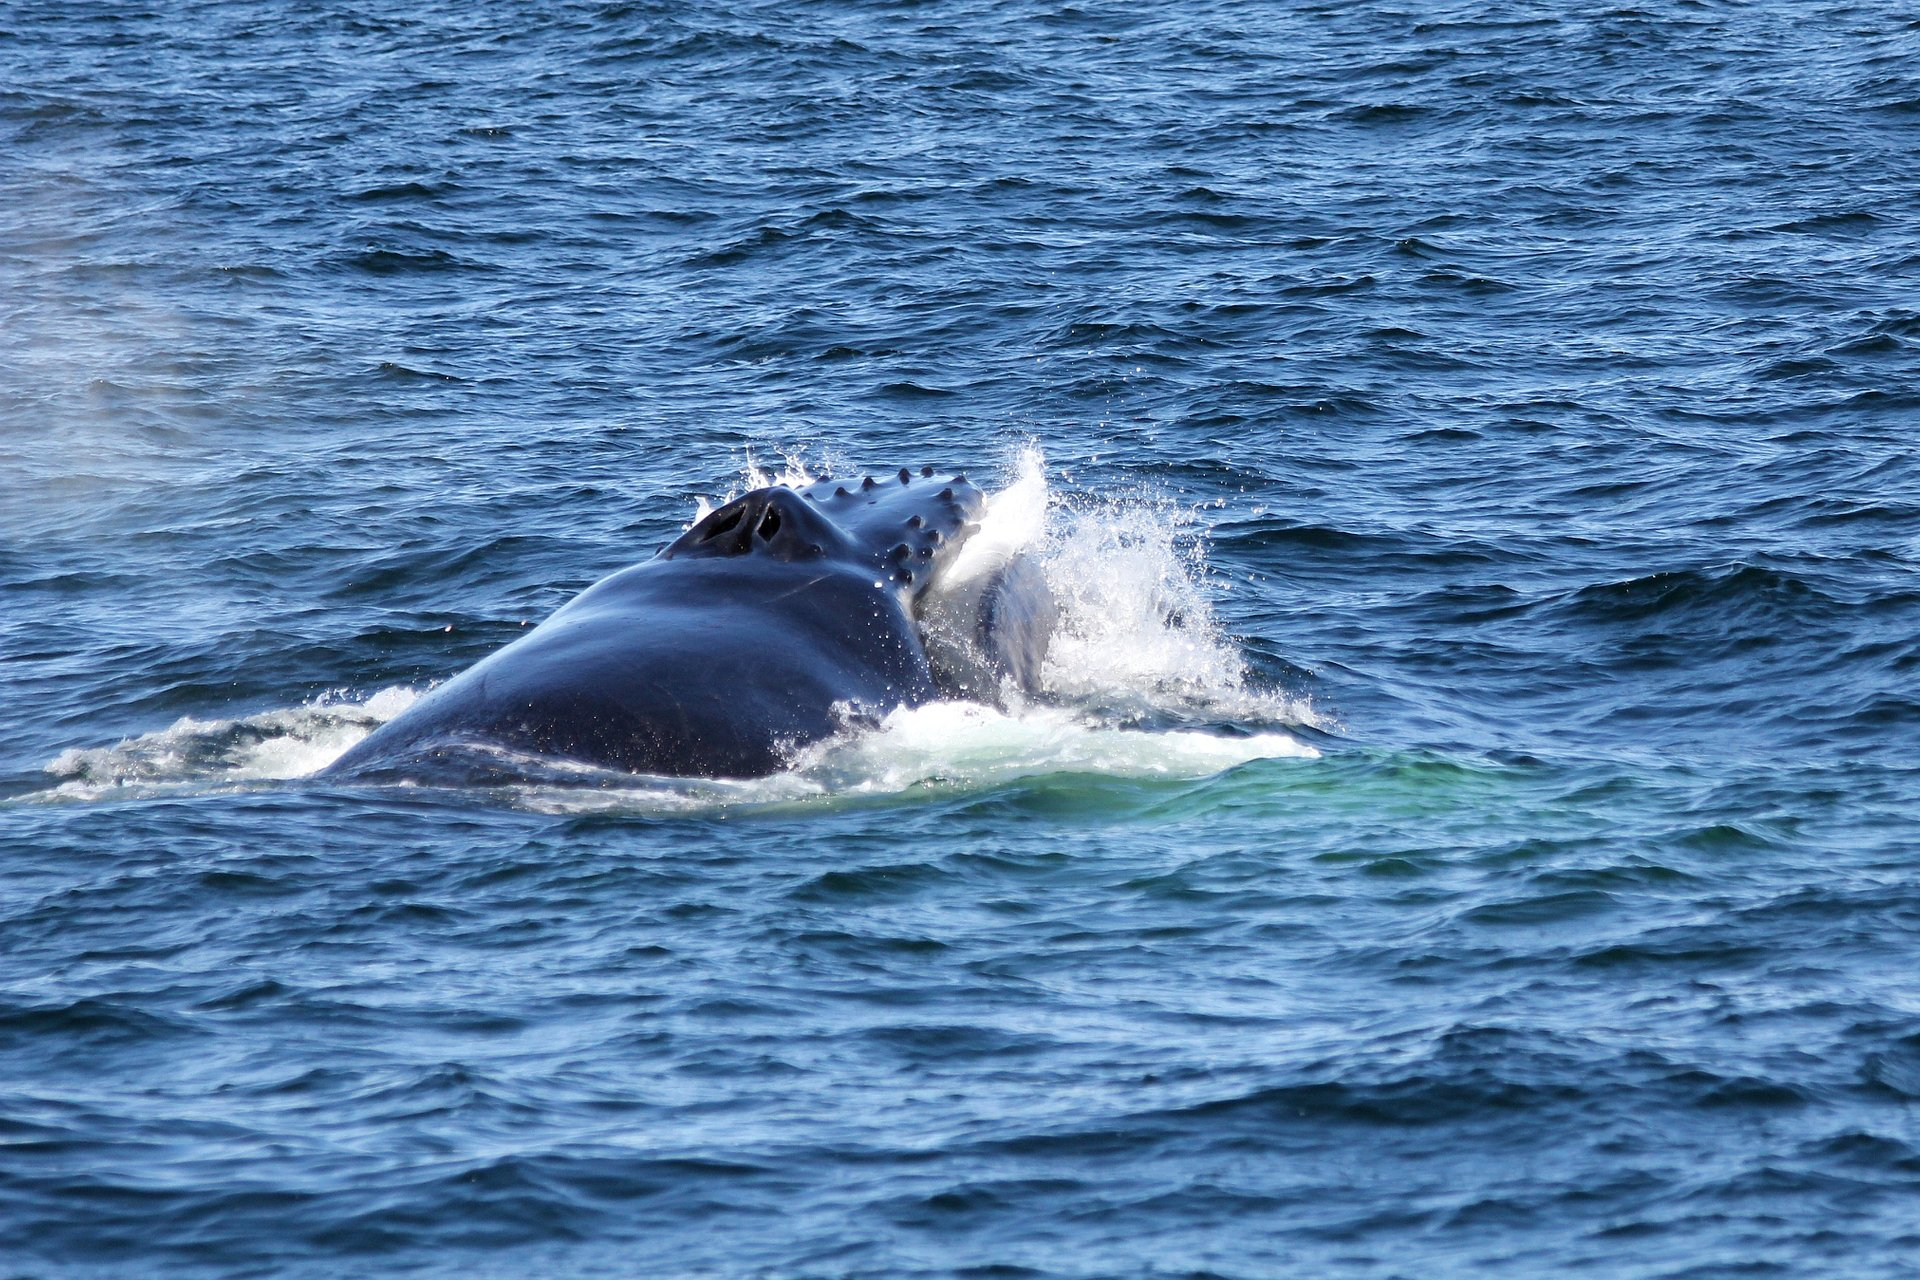 Whale Watching in New Hampshire 2020 - Best Time